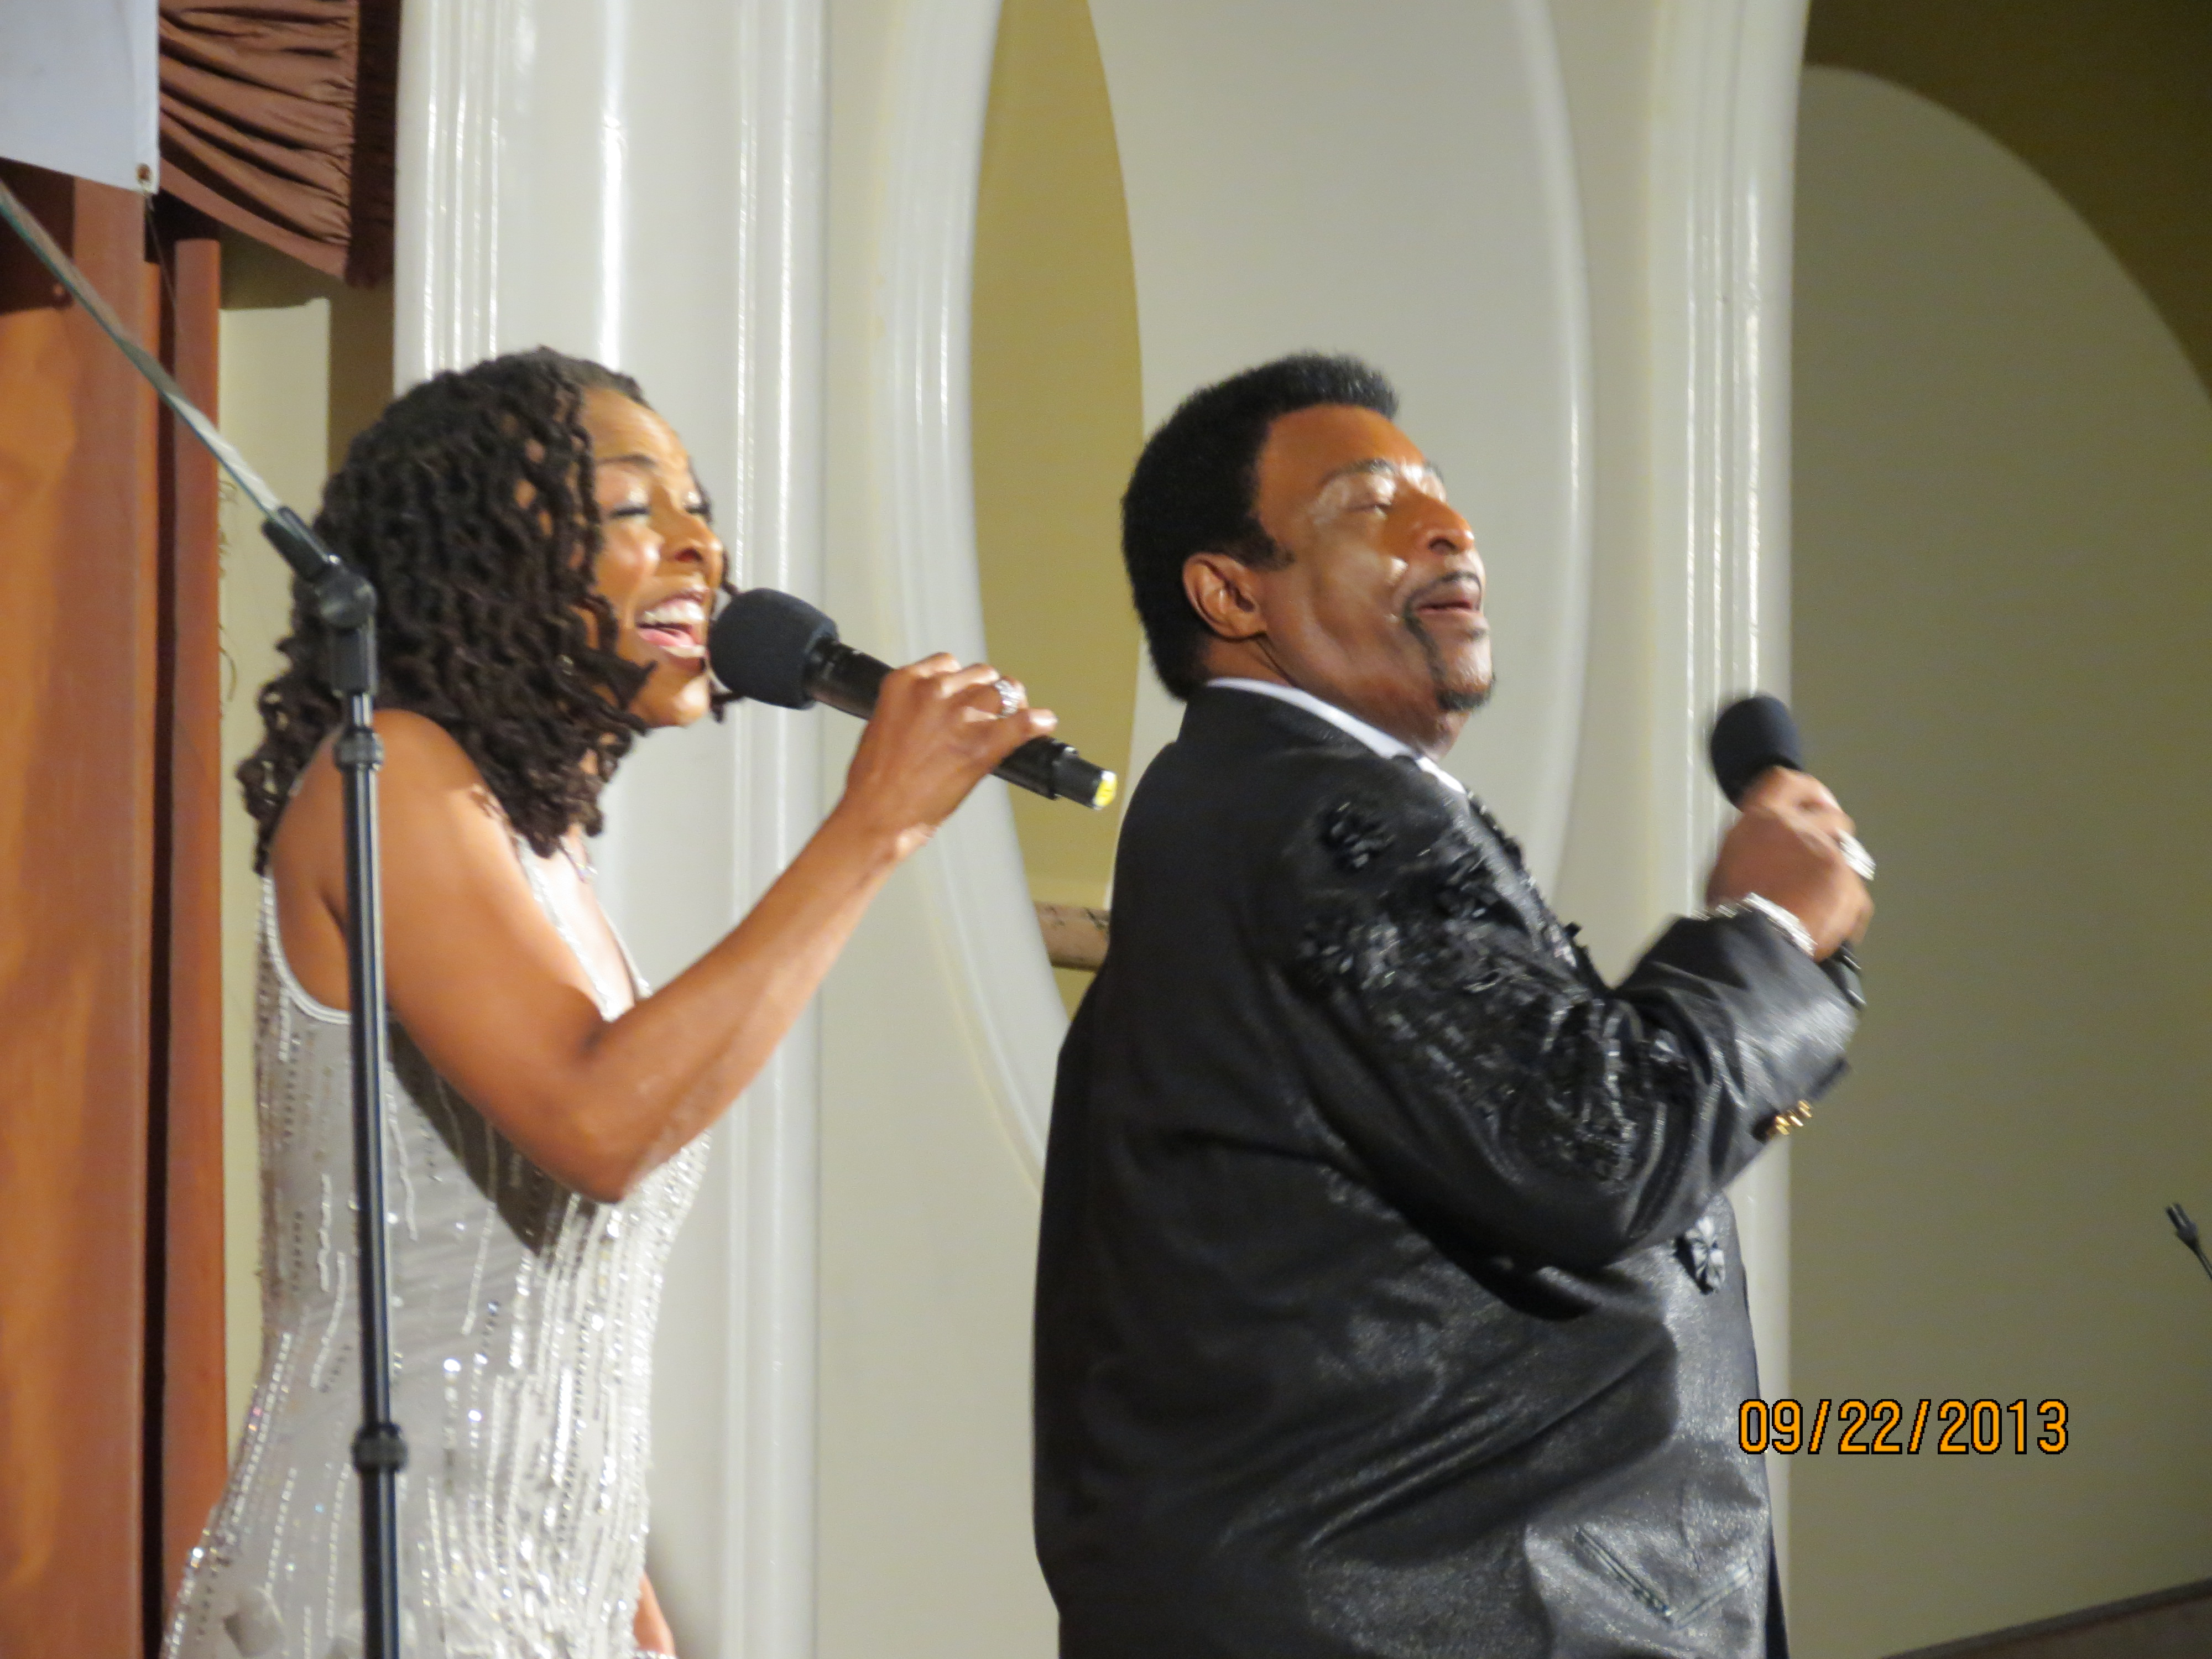 Siedah Garrett and Dennis Edwards from The Temptations perform